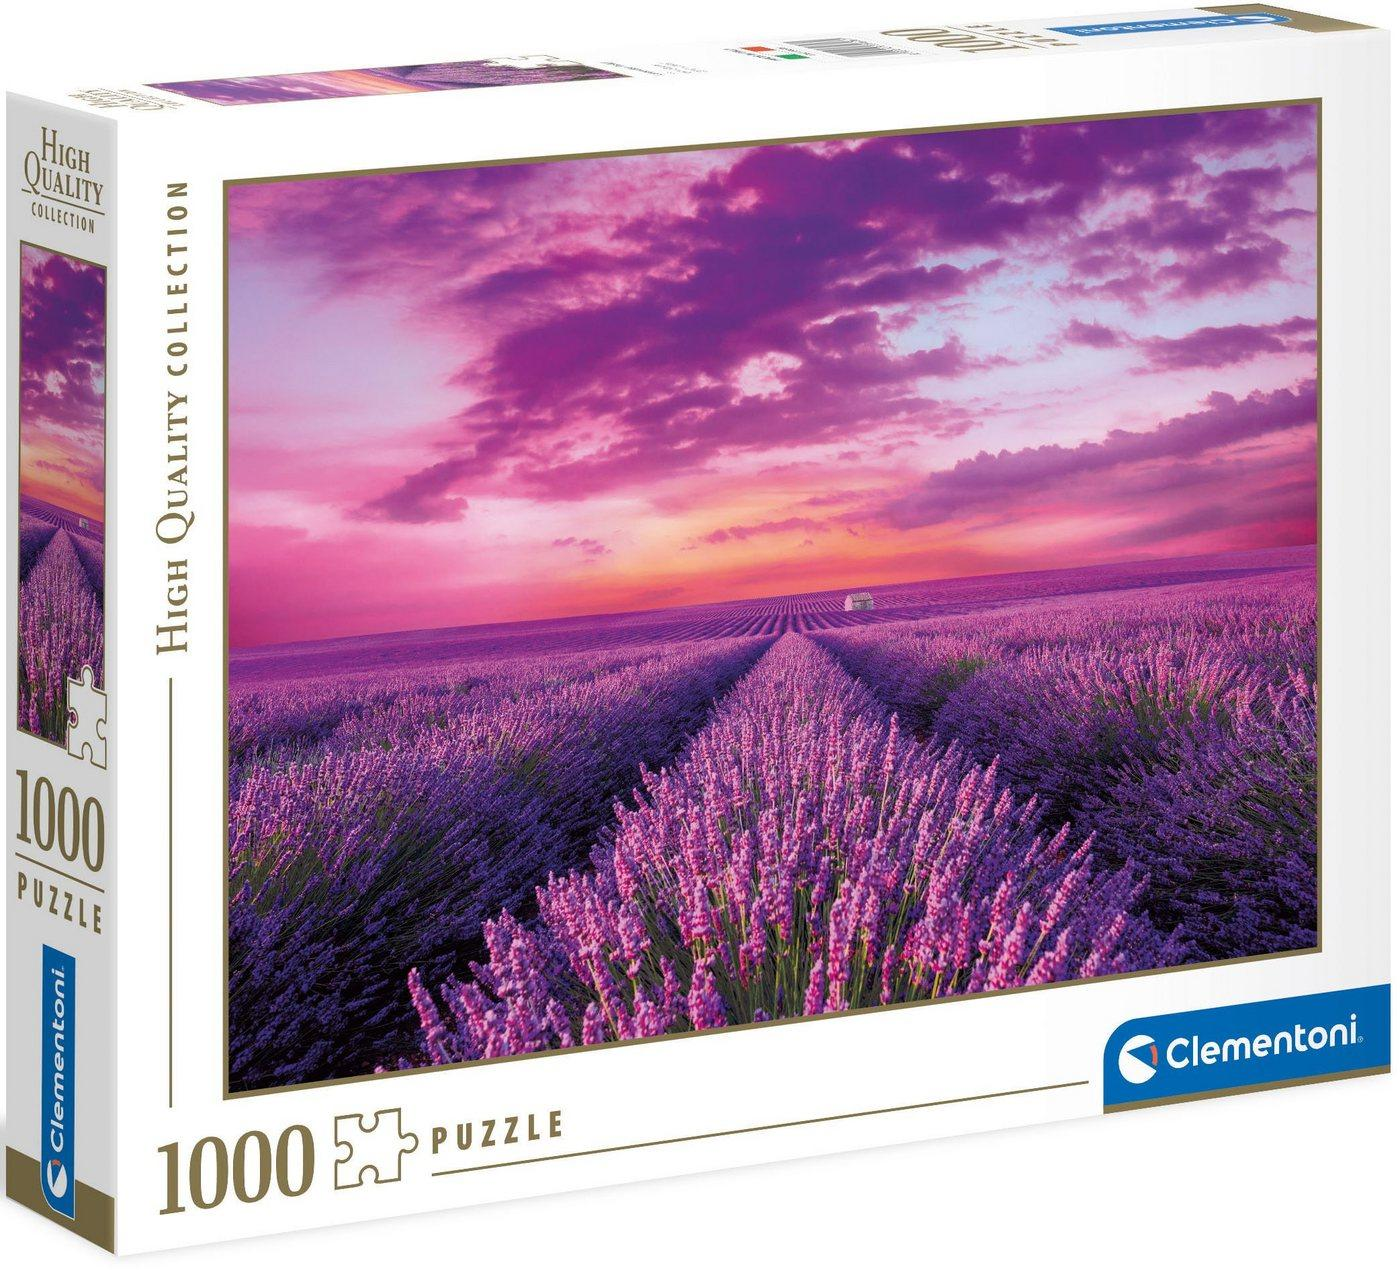 Clementoni® Puzzle »High Quality Collection - Lavendel-Feld«, 1000 Puzzleteile, Made in Europe, FSC® - schützt Wald - weltweit